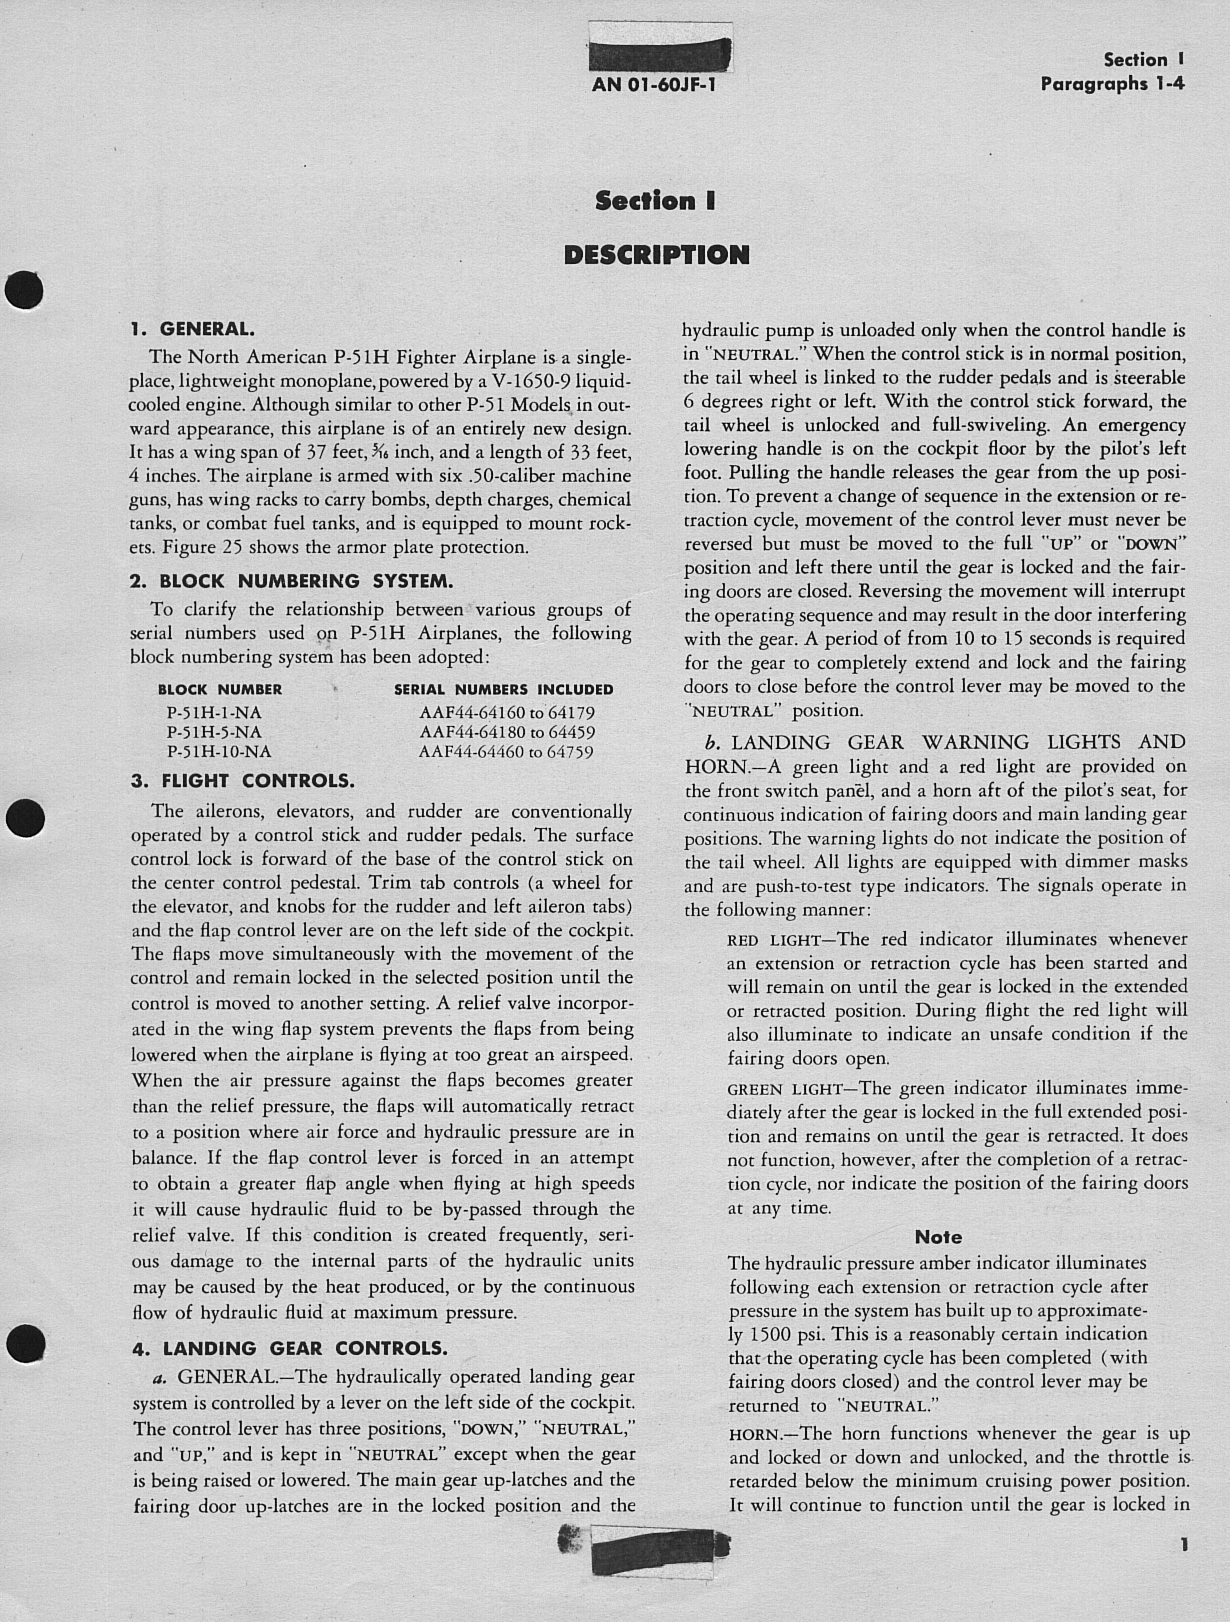 Sample page 5 from AirCorps Library document: Pilot's Handbook for P-51H-1, -5, and -10 Airplanes